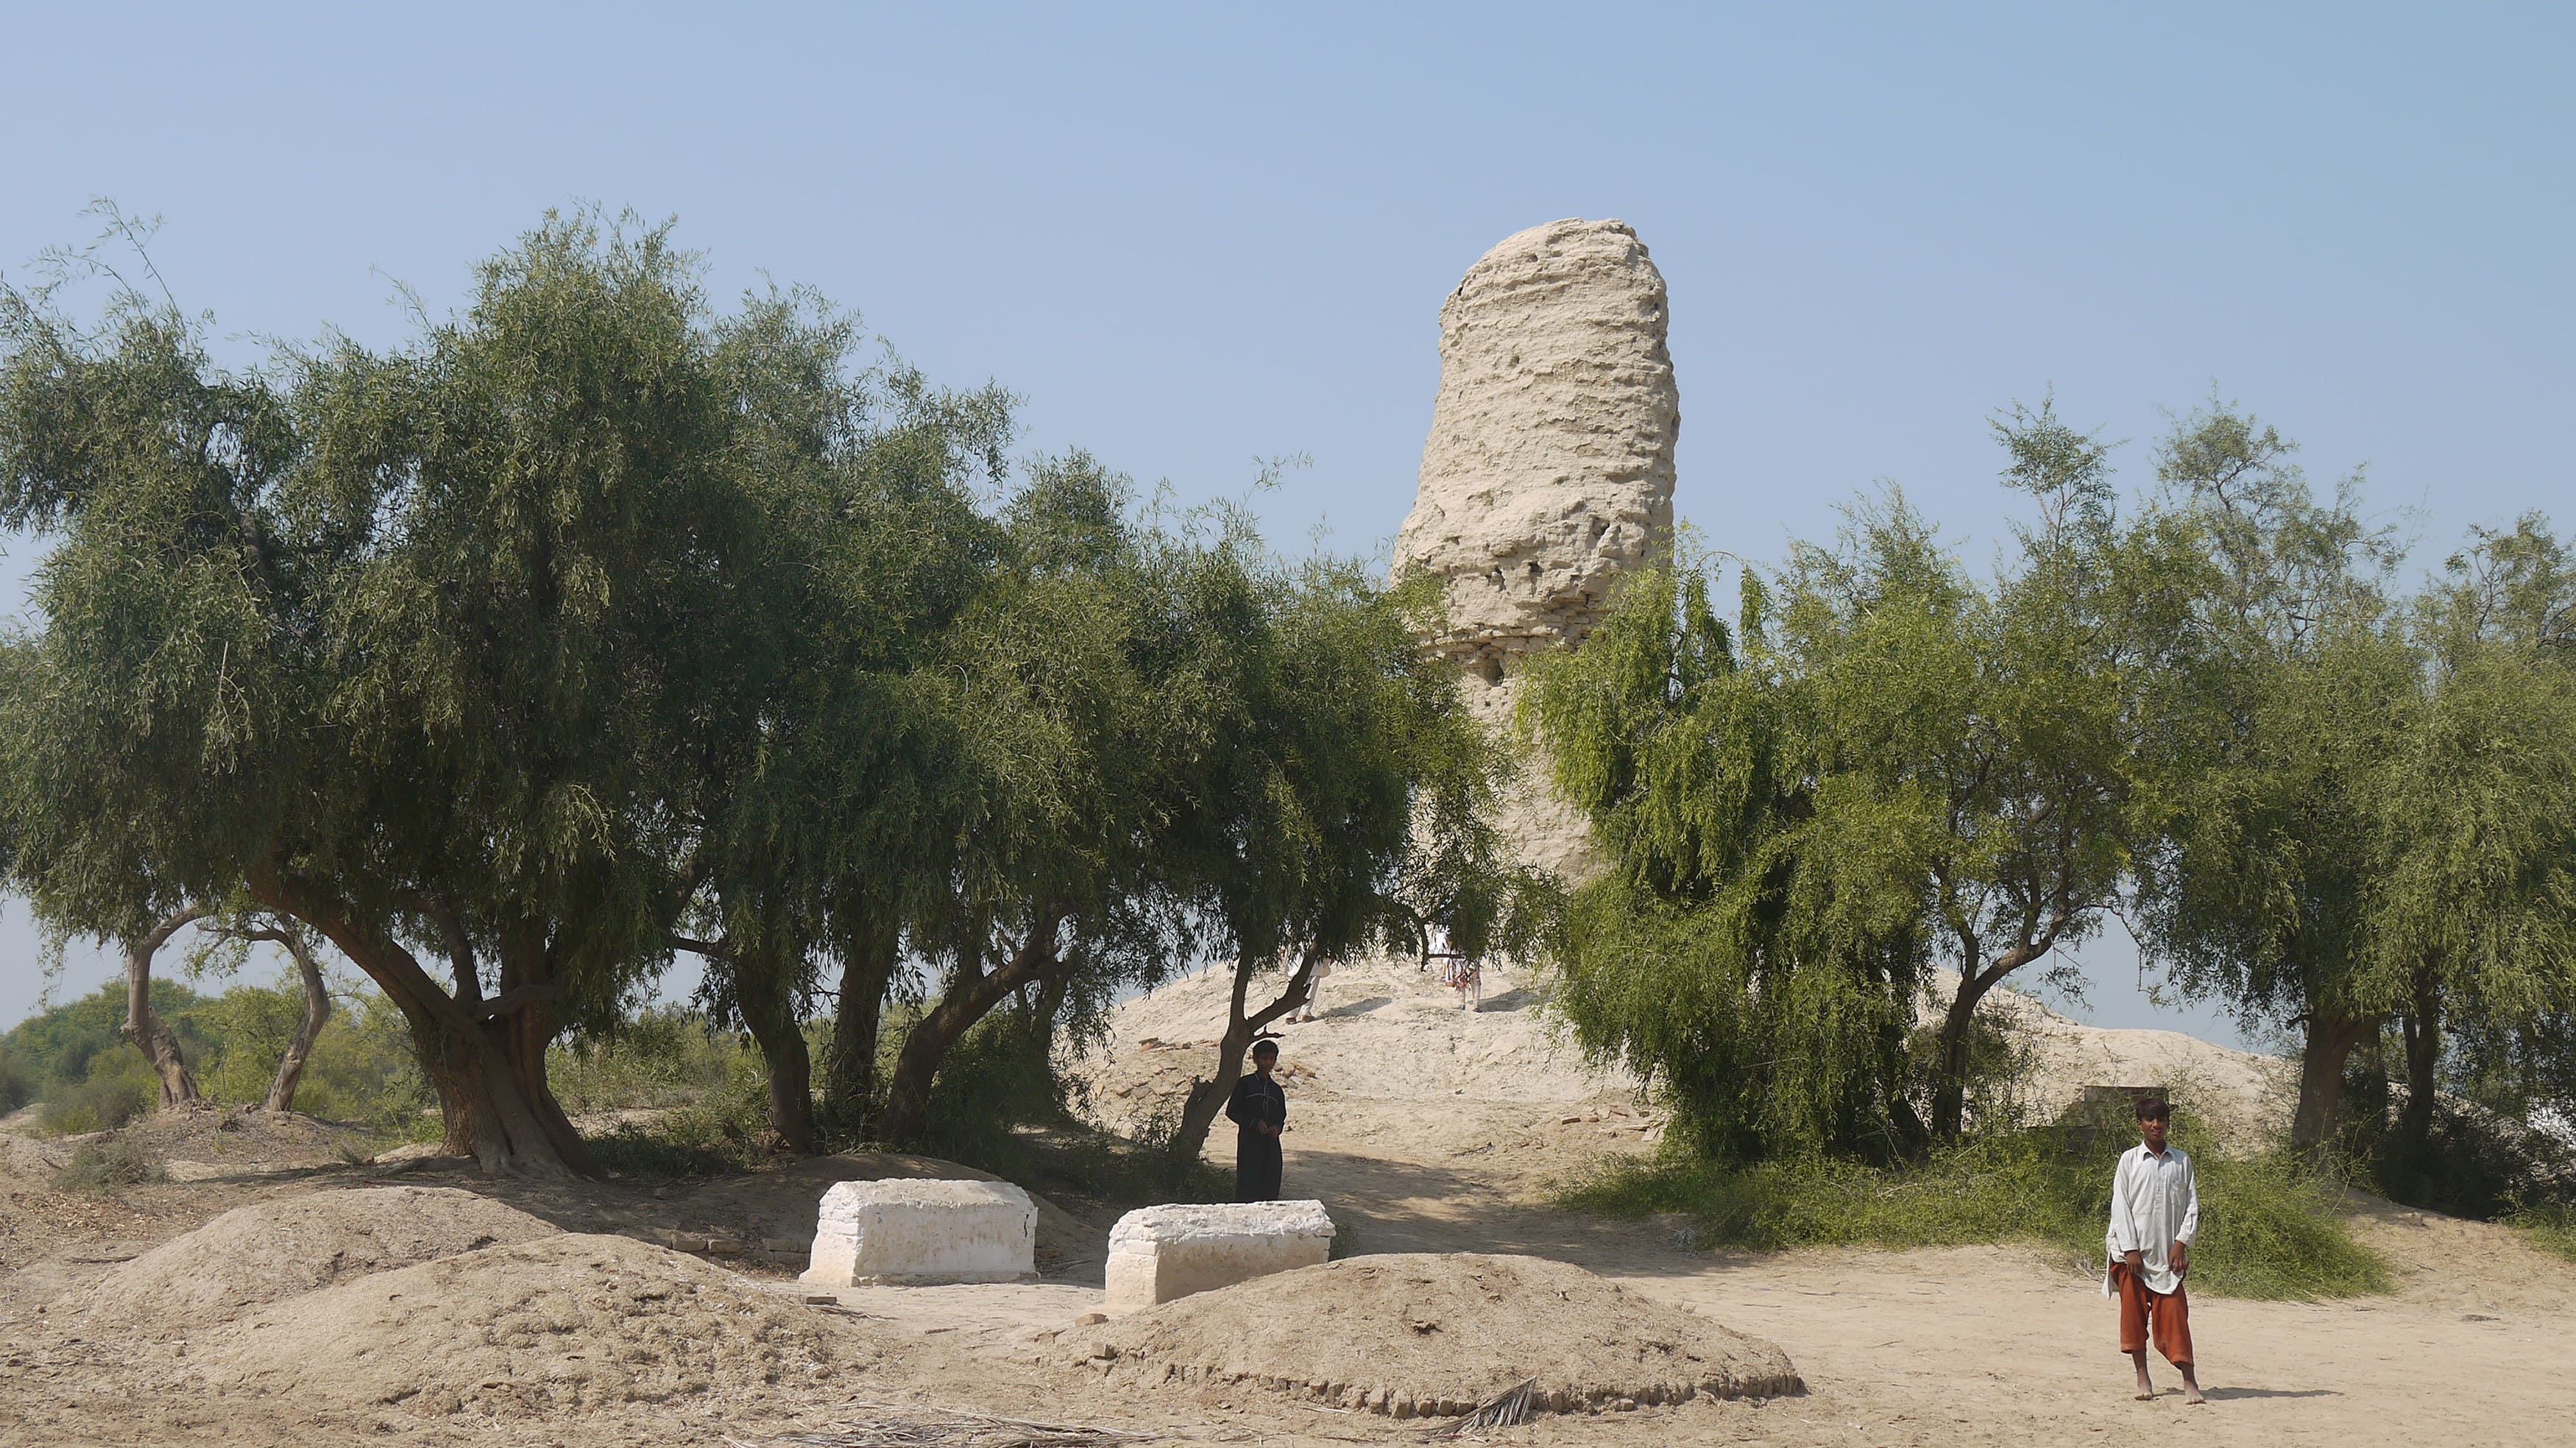 Infront of Sui Vehar, the remains of a Buddhist stupa